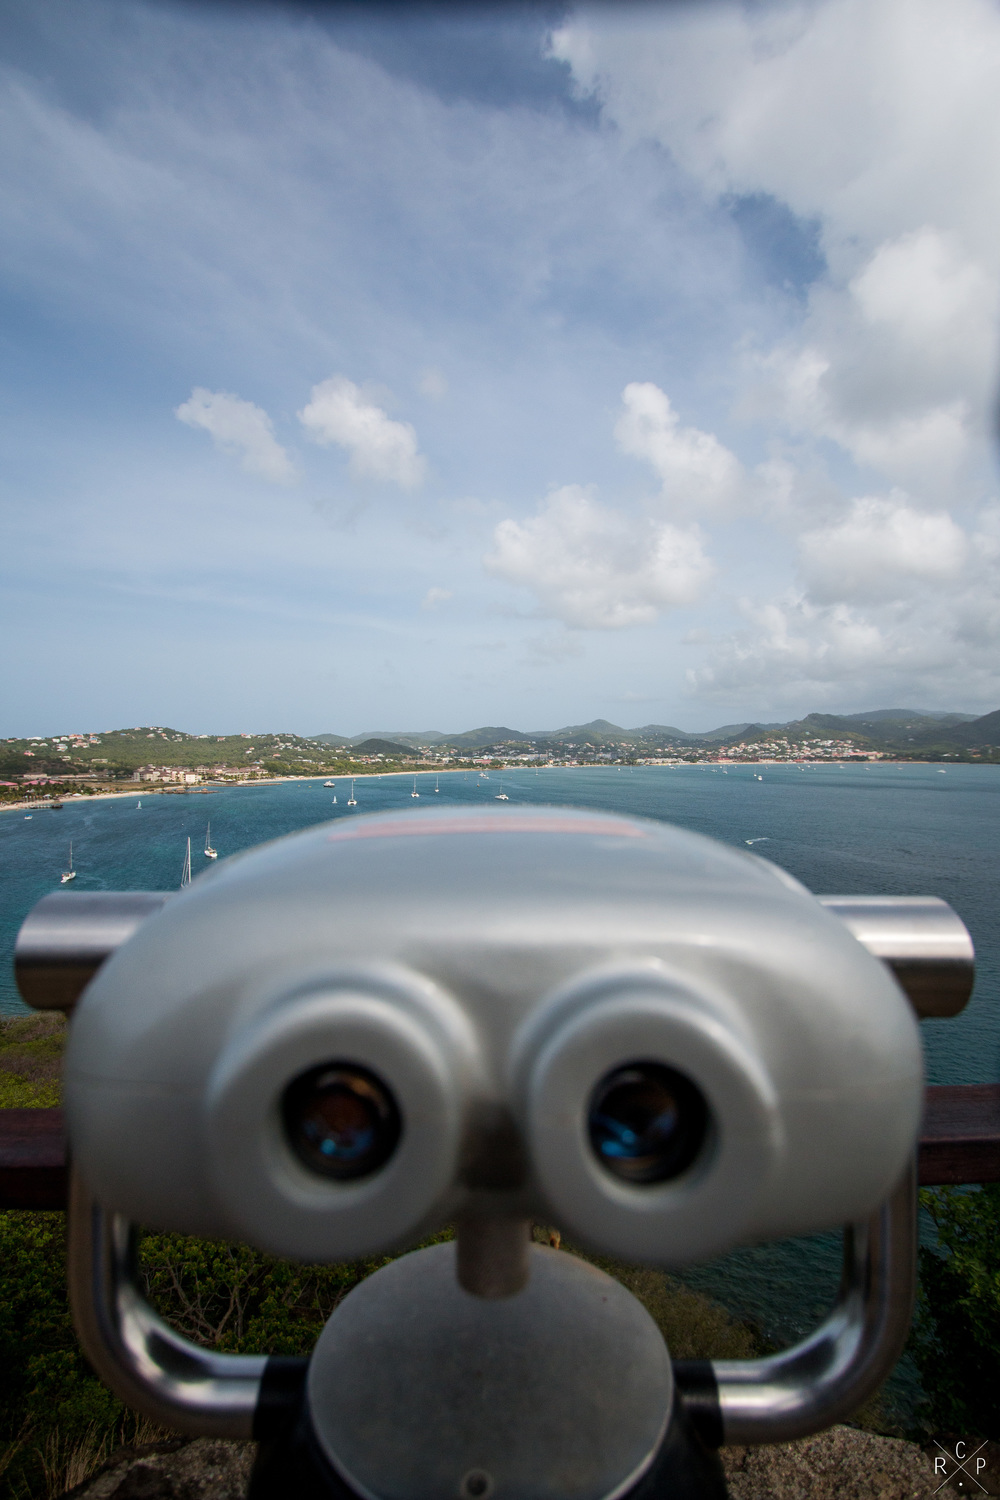 Looking Out 2 - Pigeon Island, Saint Lucia 29/03/2016